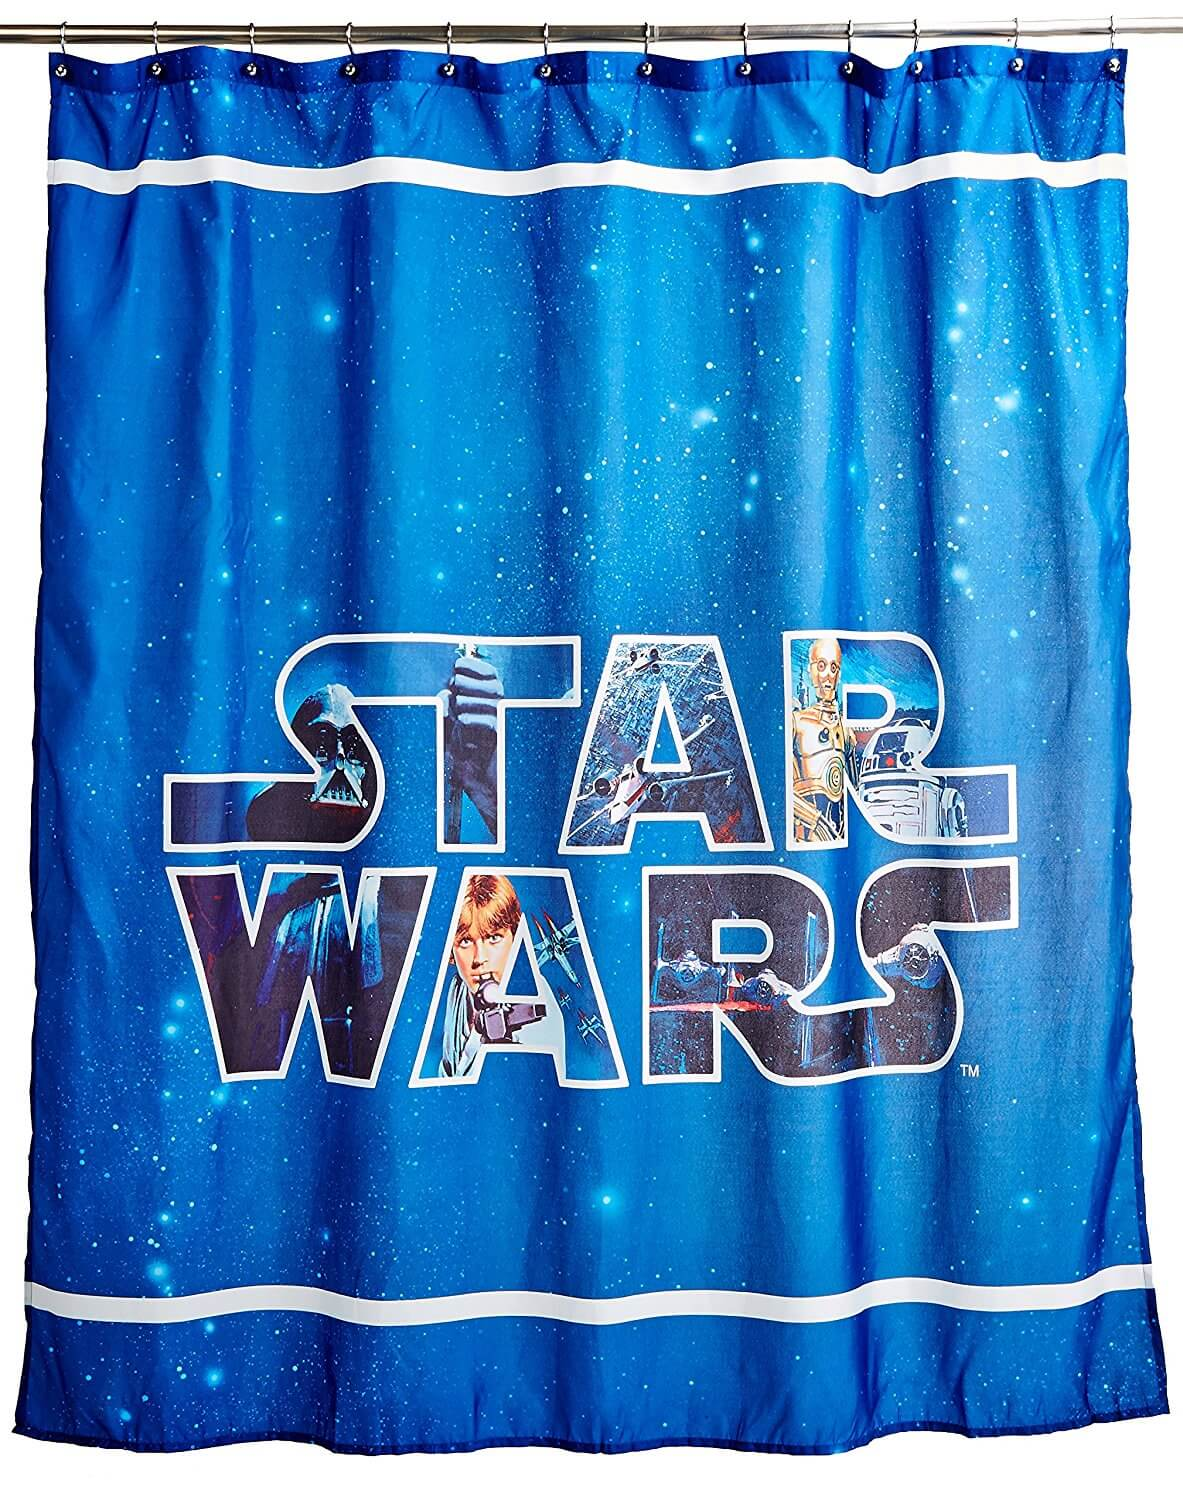 22 Best Kids Shower Curtain Ideas For 2018